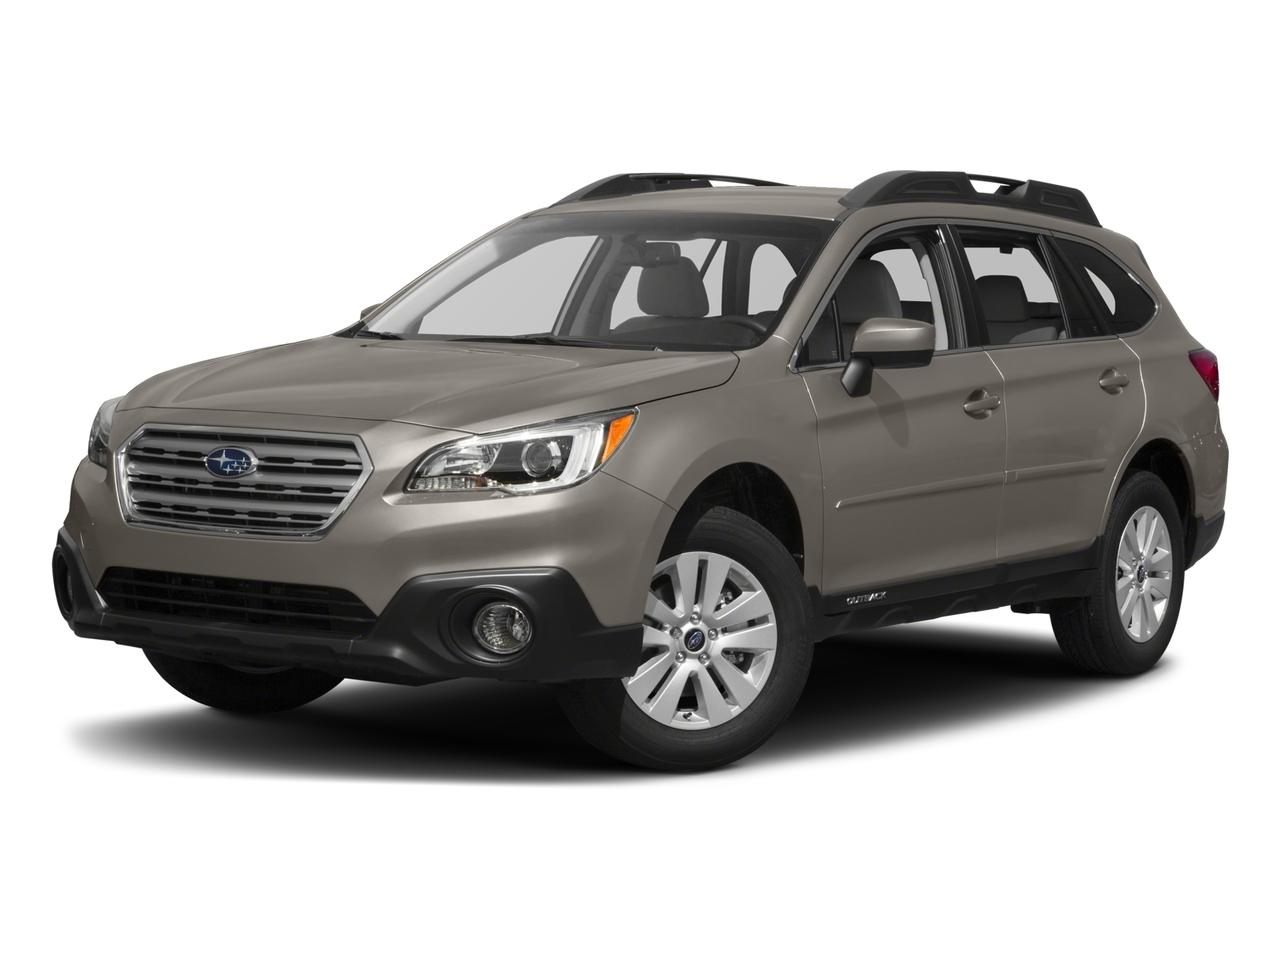 2016 Subaru Outback Vehicle Photo in Helena, MT 59601